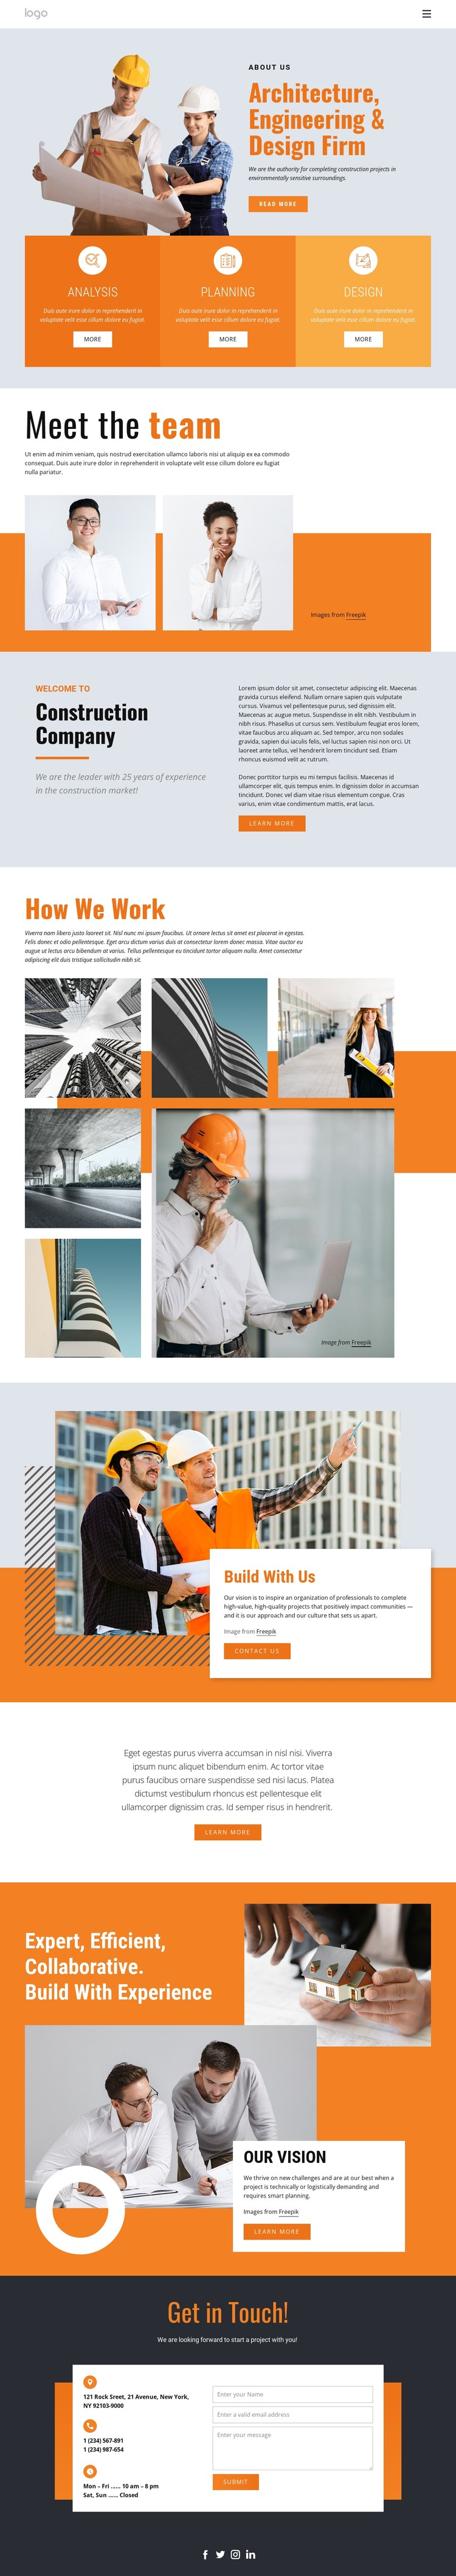 Engineering firm CSS Template